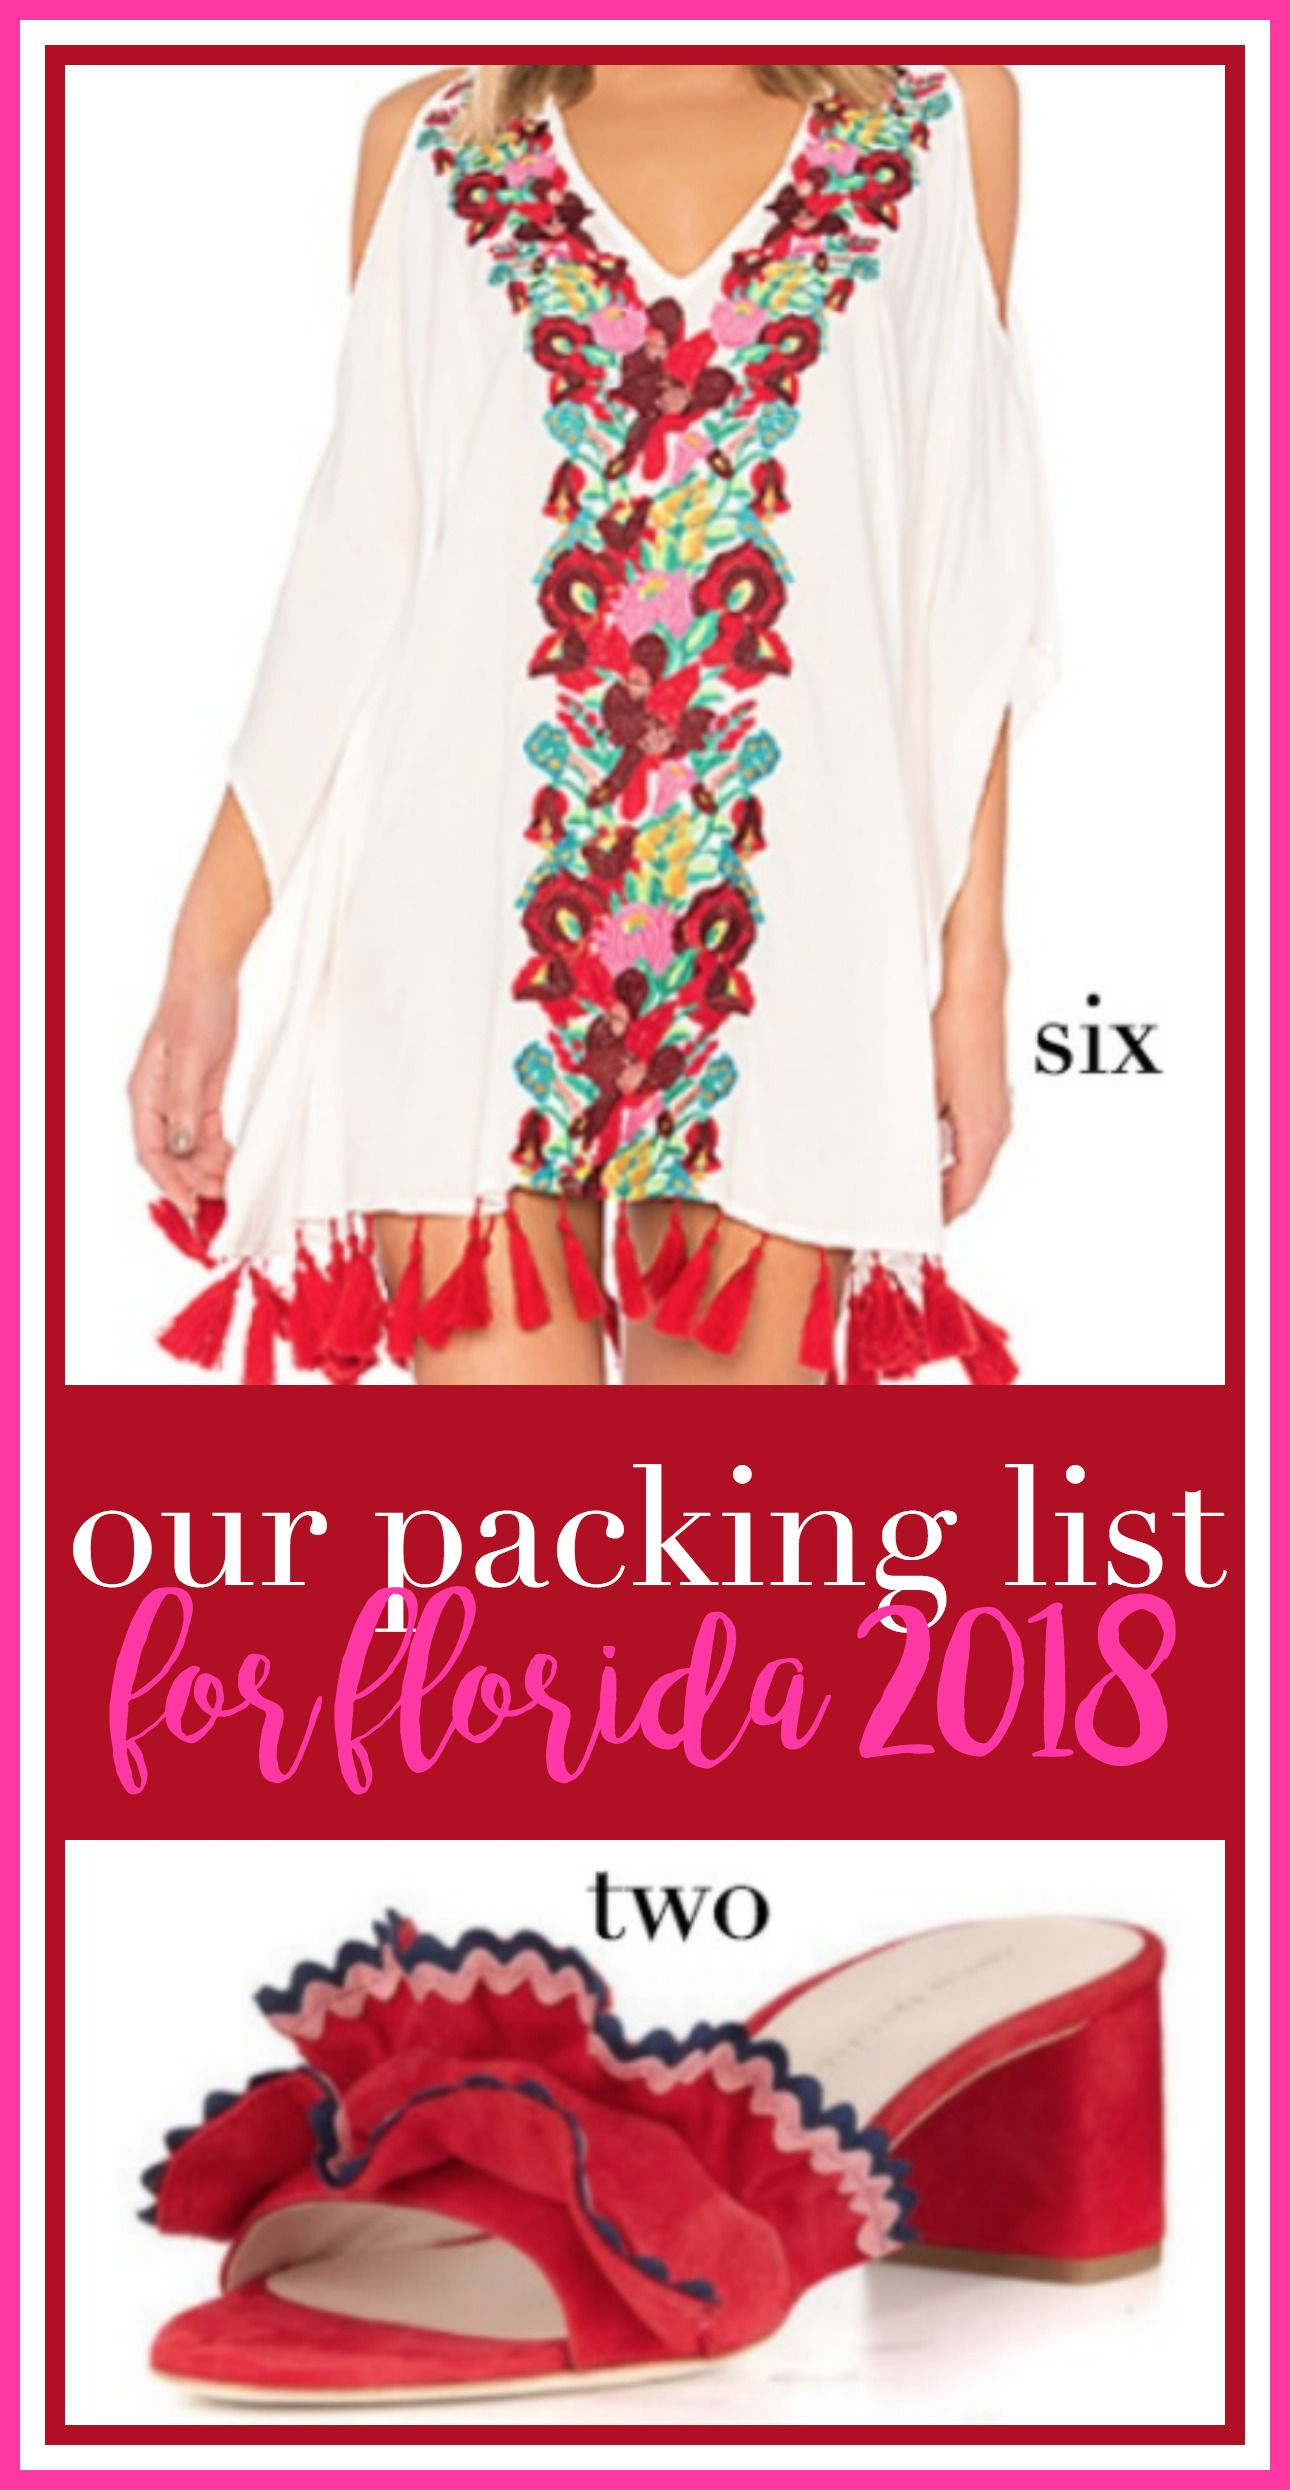 what to pack for florida in february, what to pack for florida in october, florida packing list orlando, what to pack for florida in august, what to pack for florida vacation, what to pack for florida in march, what to pack for florida in december